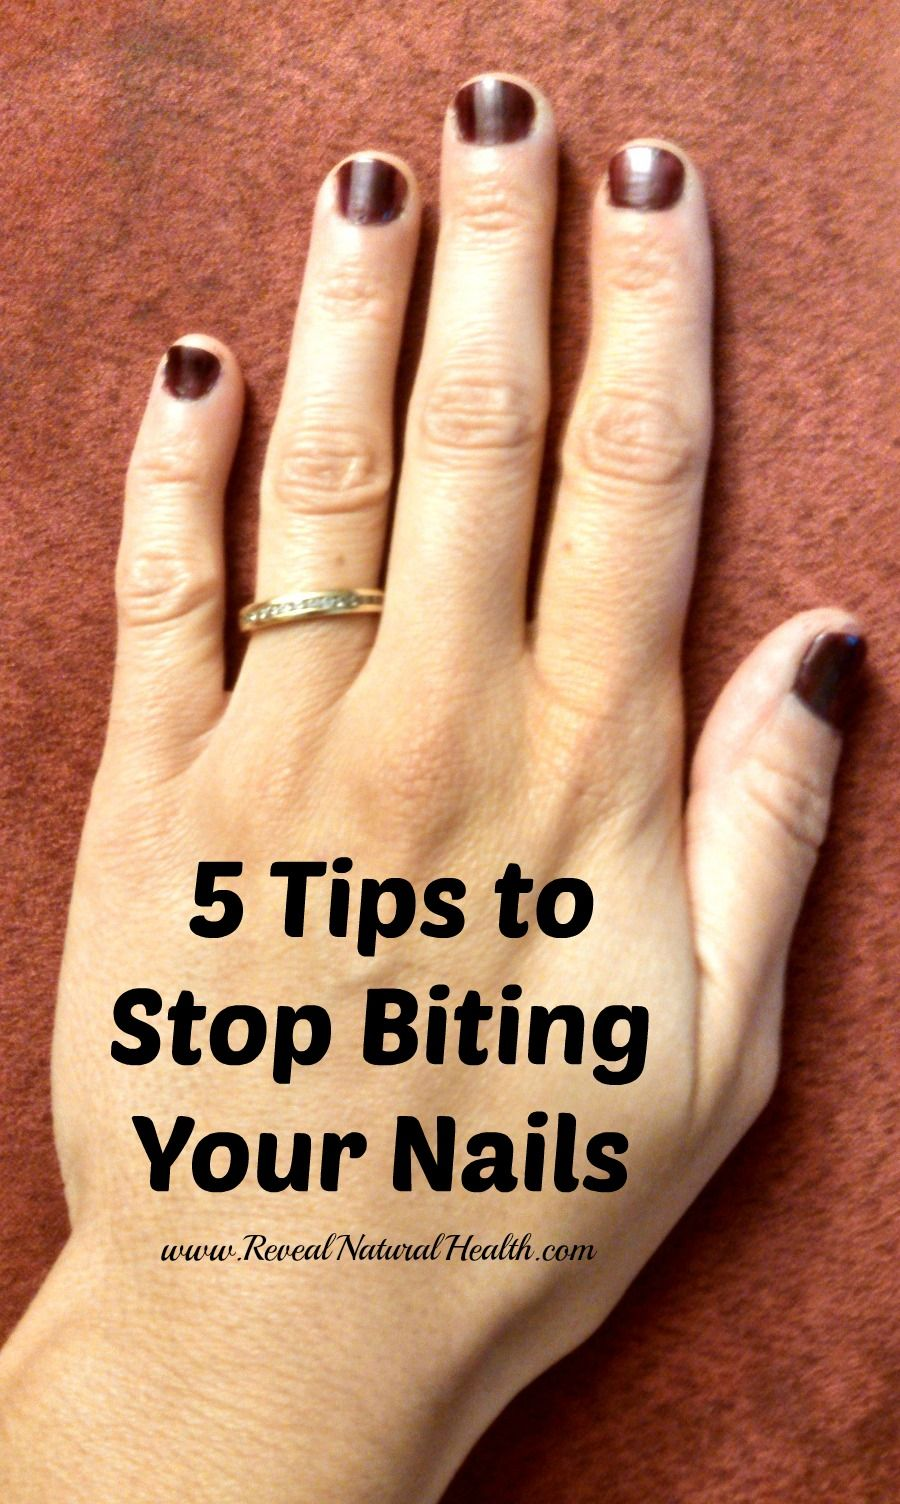 5 Tips to Stop Biting Your Nails - Reveal Natural Health